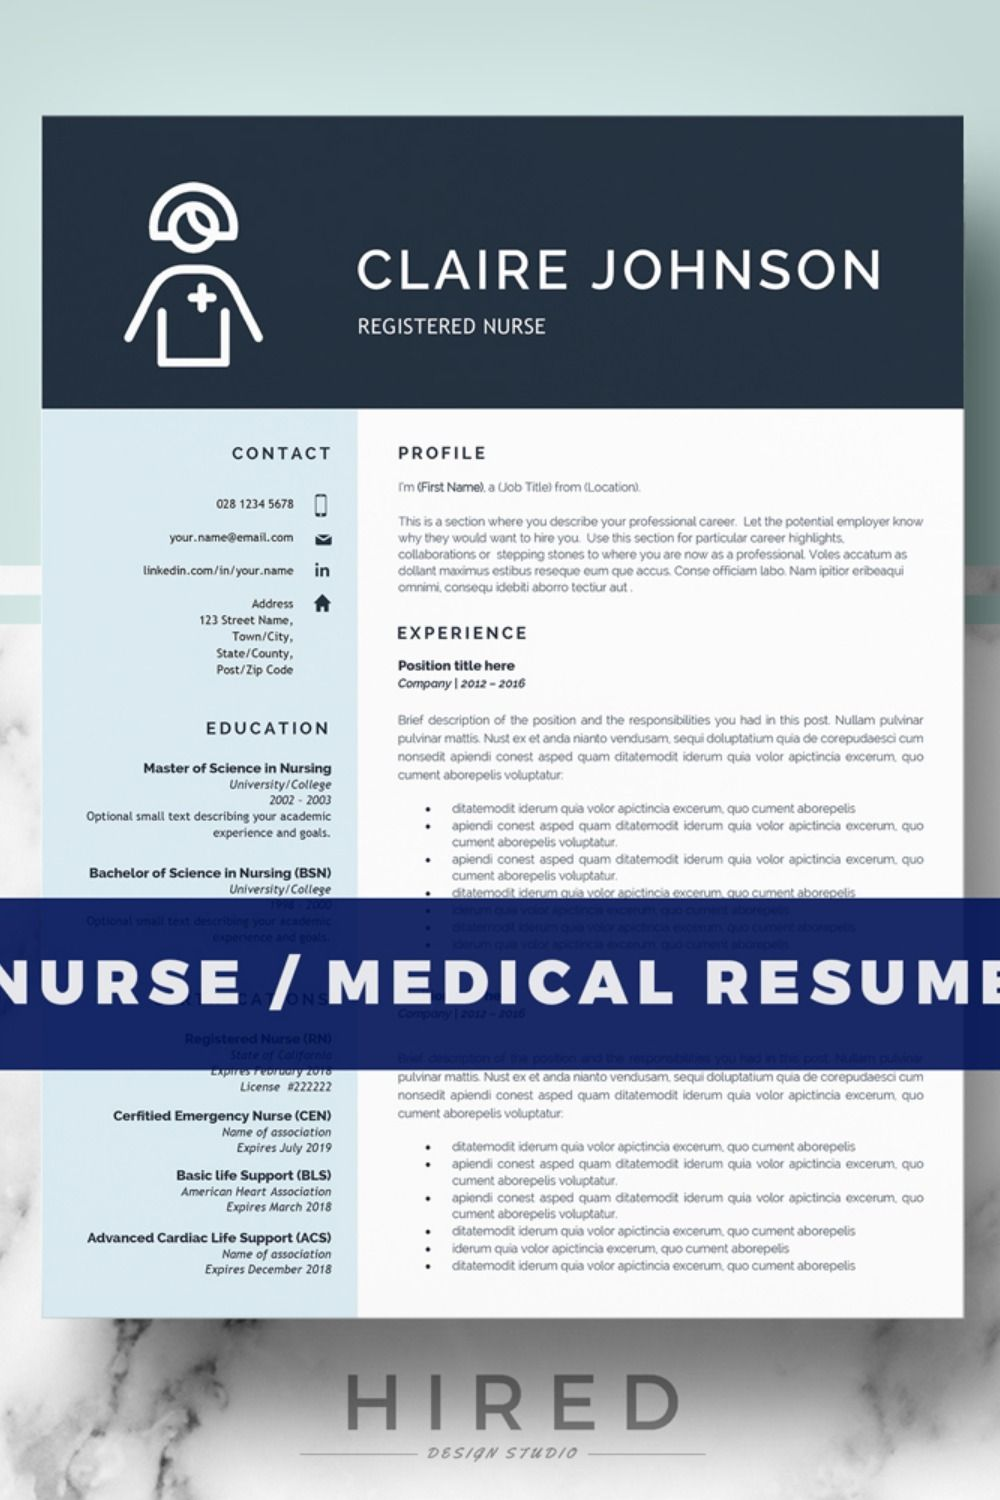 R16 CLAIRE JOHNSON Nurse Resume Template for Word